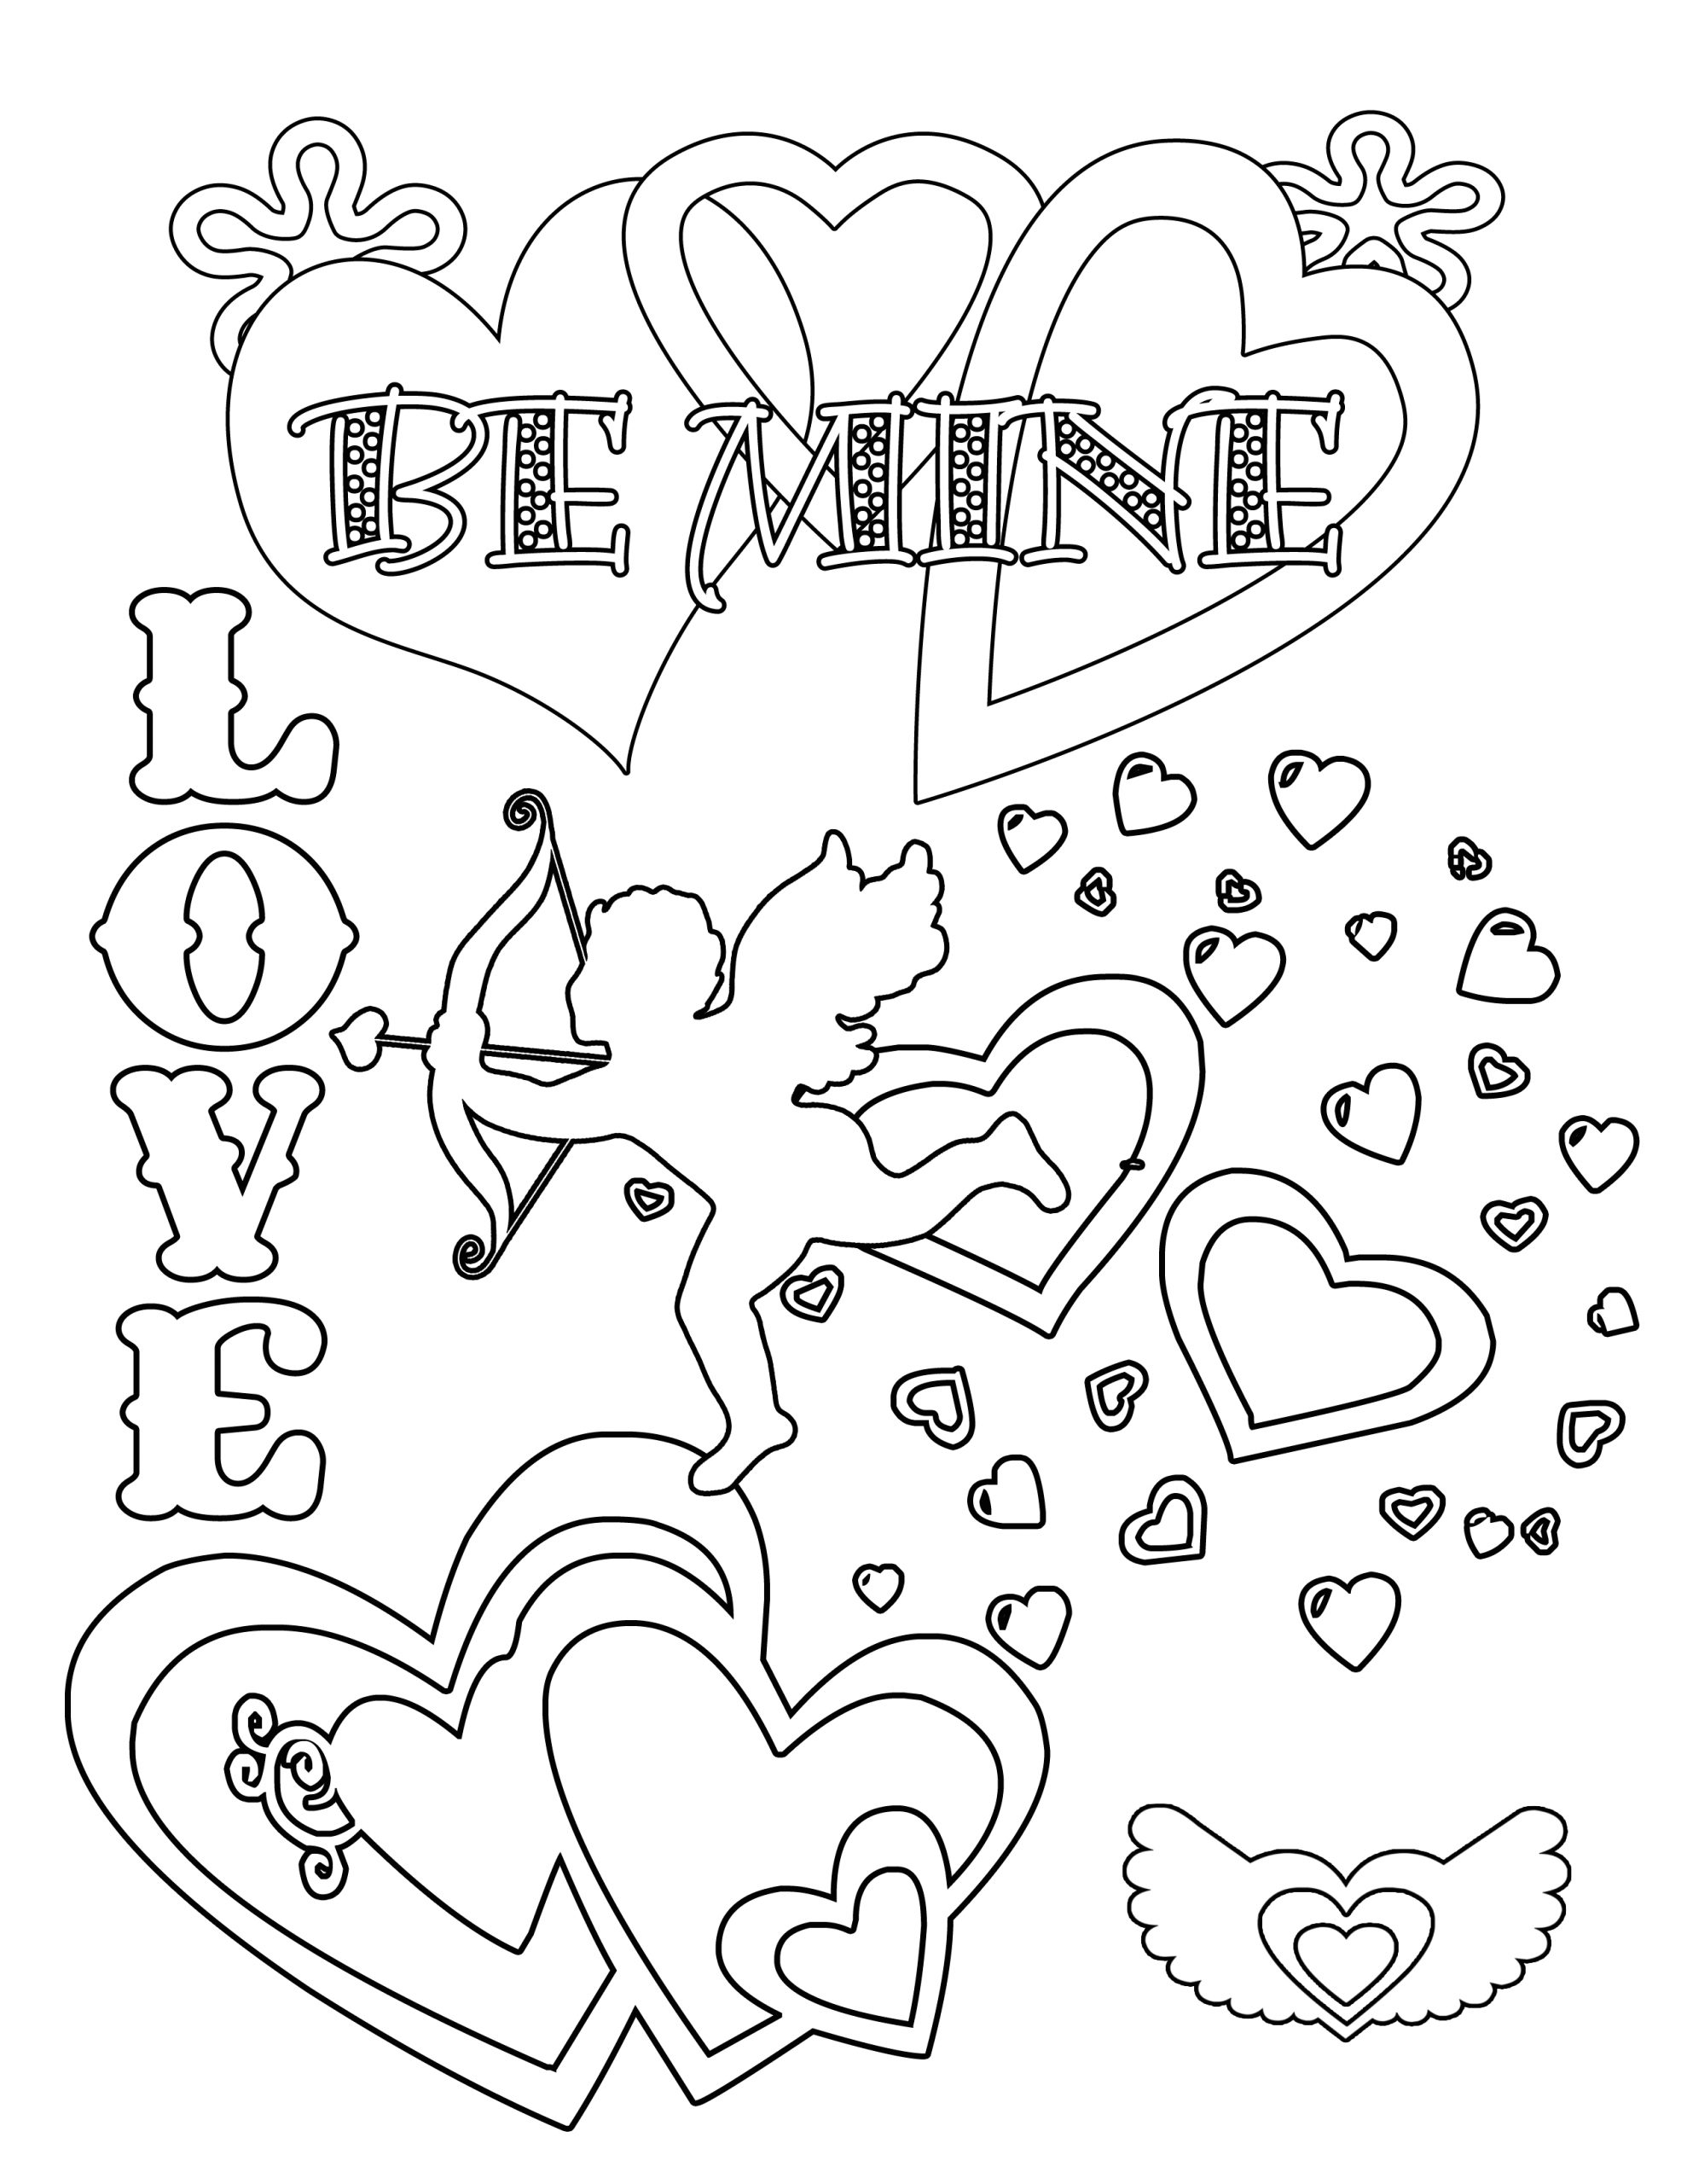 Free Printable Valentine Coloring Pages for Kids Party Simplicity Free Valentines Day Coloring Pages and